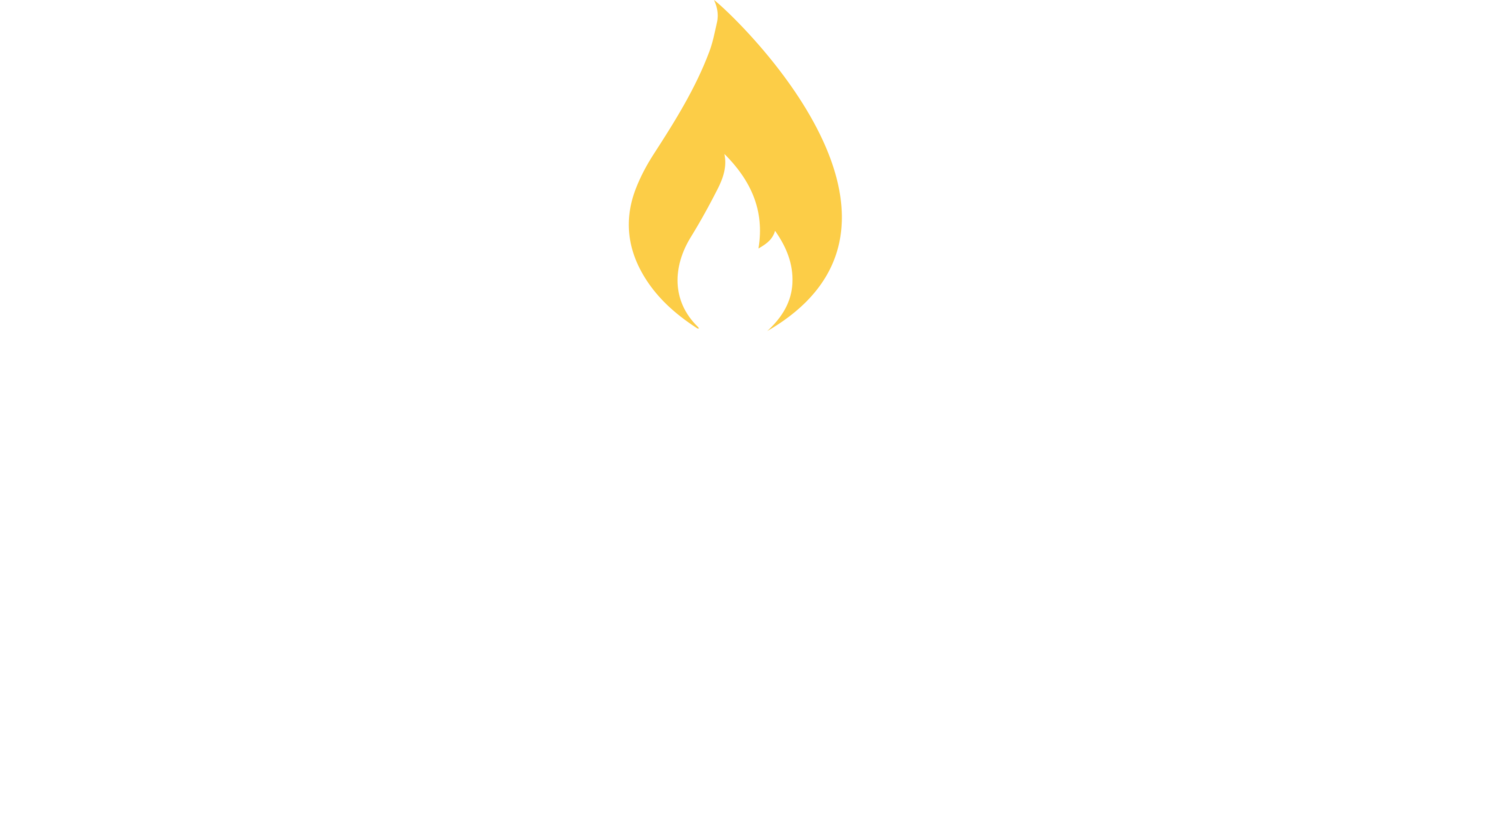 Empire Candle Co., LLC